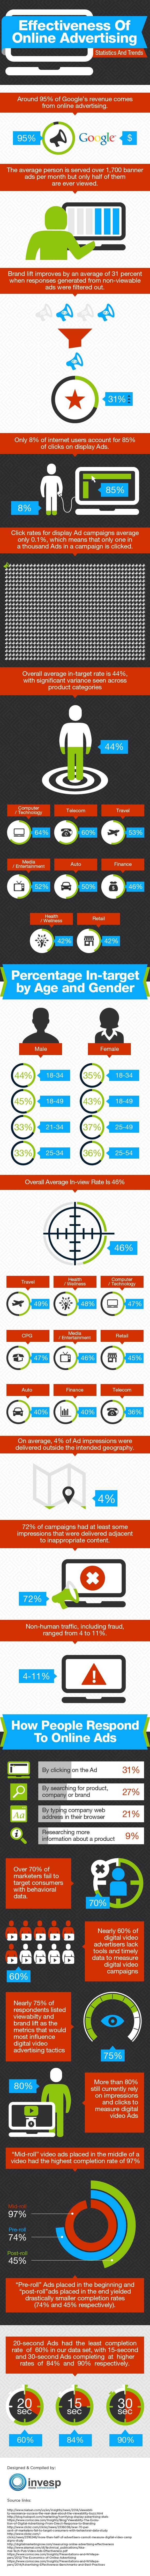 Effectiveness Of Online Advertising - Statistics and Trends